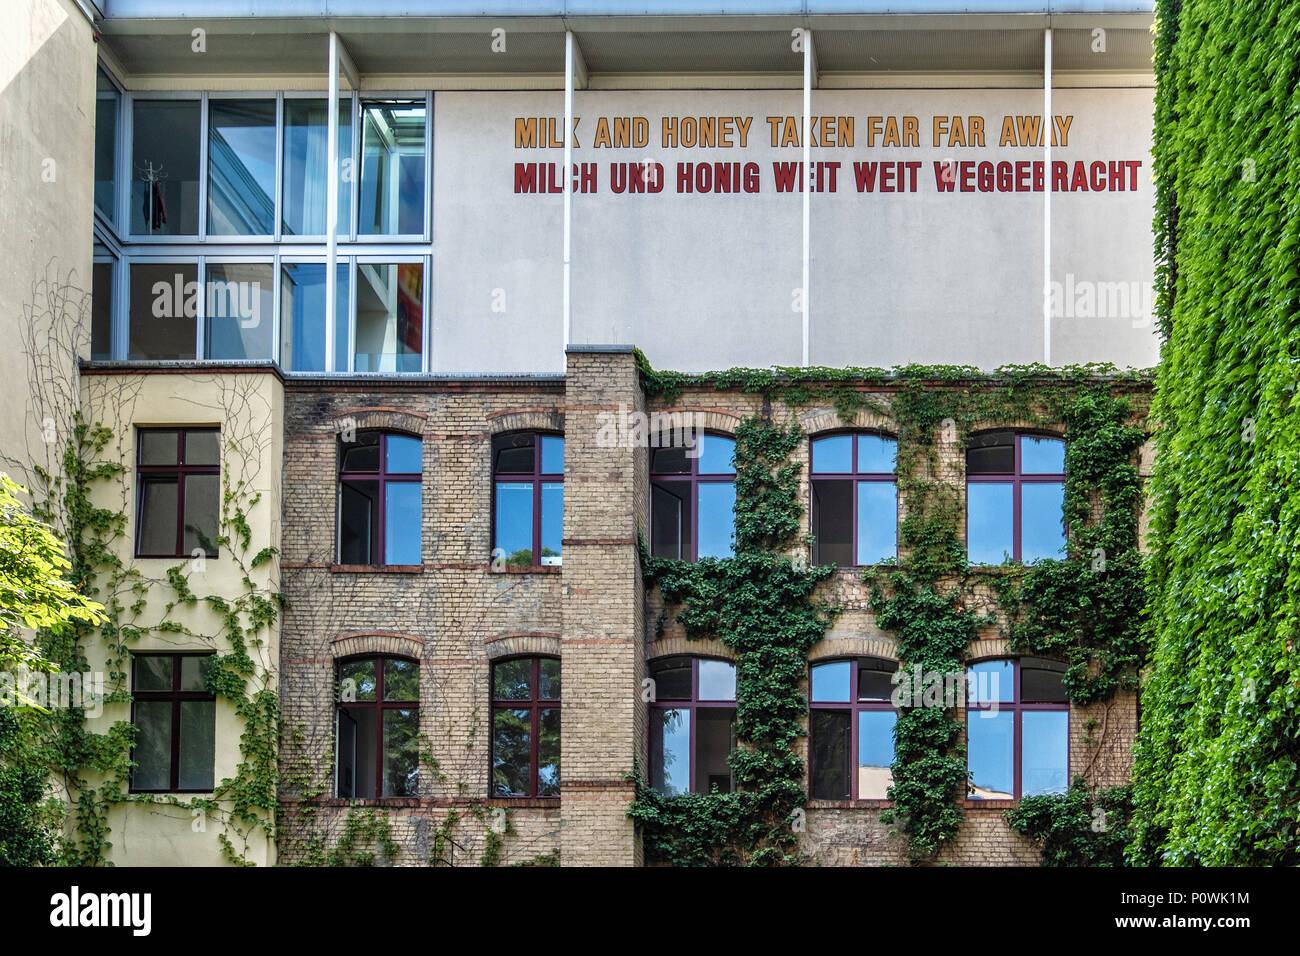 Berlin, Mitte Sophie-Gips-HöfeHistoric 19th century building in Sophienstrasse & late 20th century  addition,Hoffman Gallery. Word art on facade - Stock Image